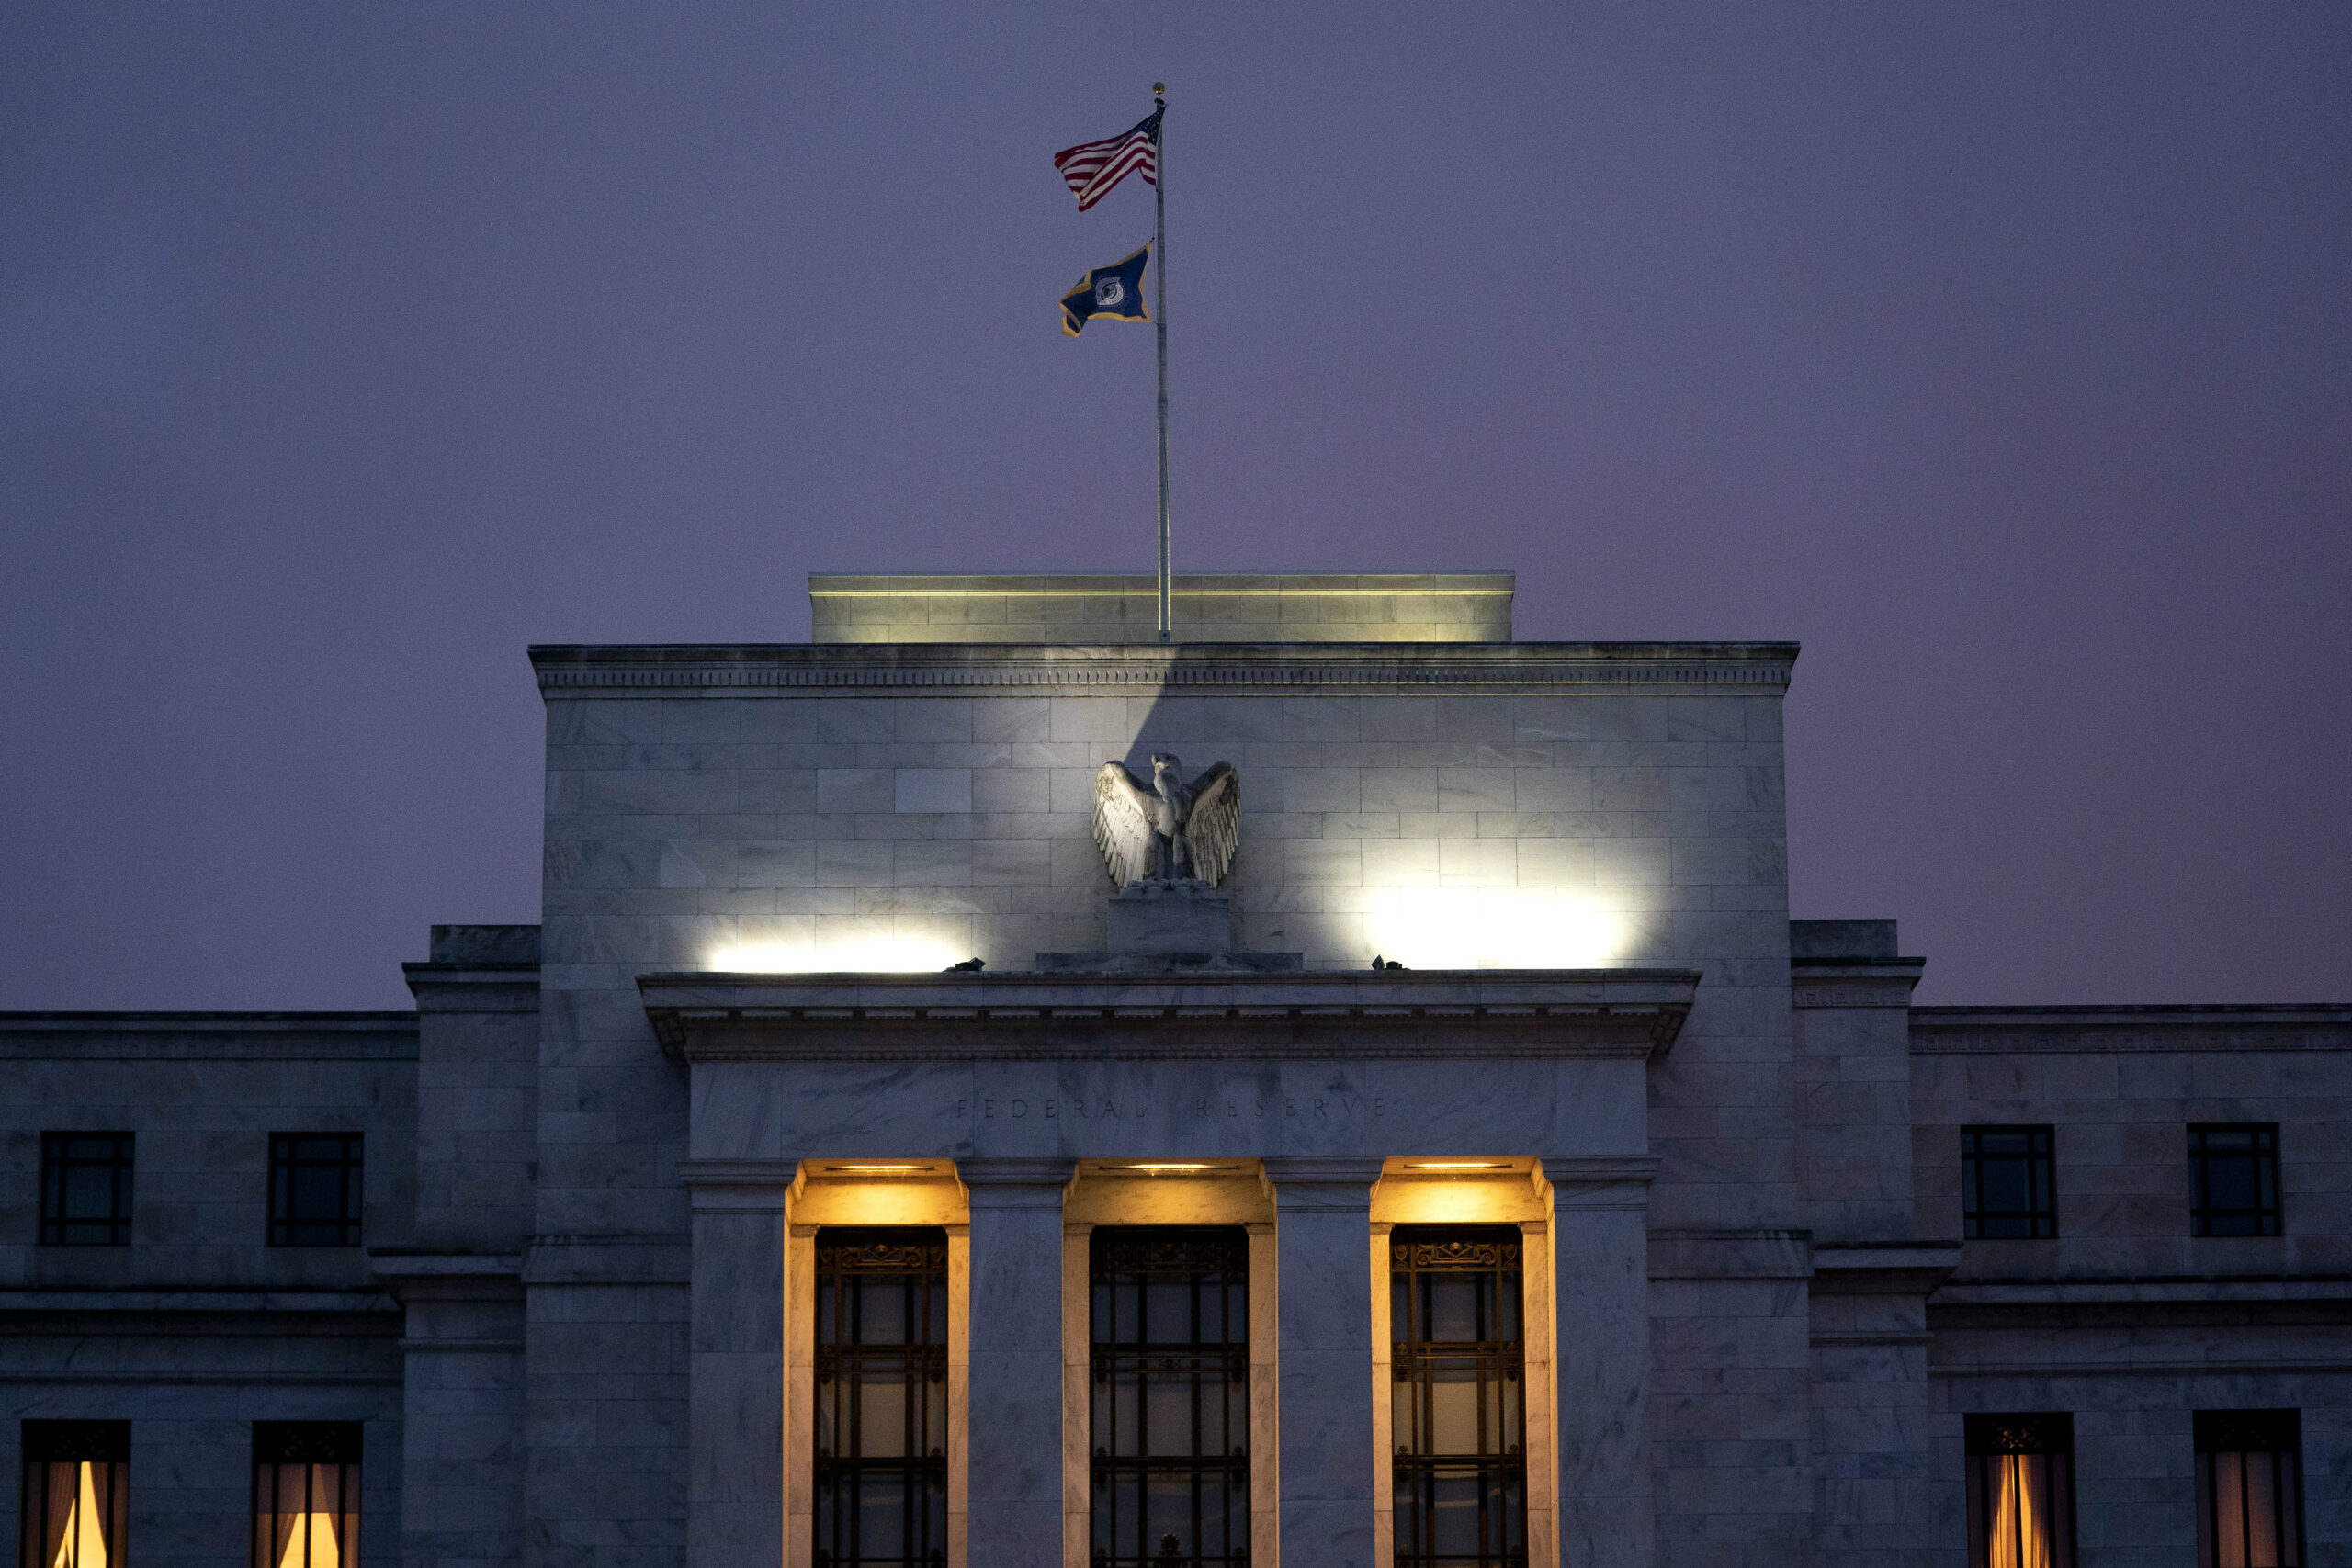 After years of being 'squeaky clean,' the Federal Reserve is surrounded by controversy